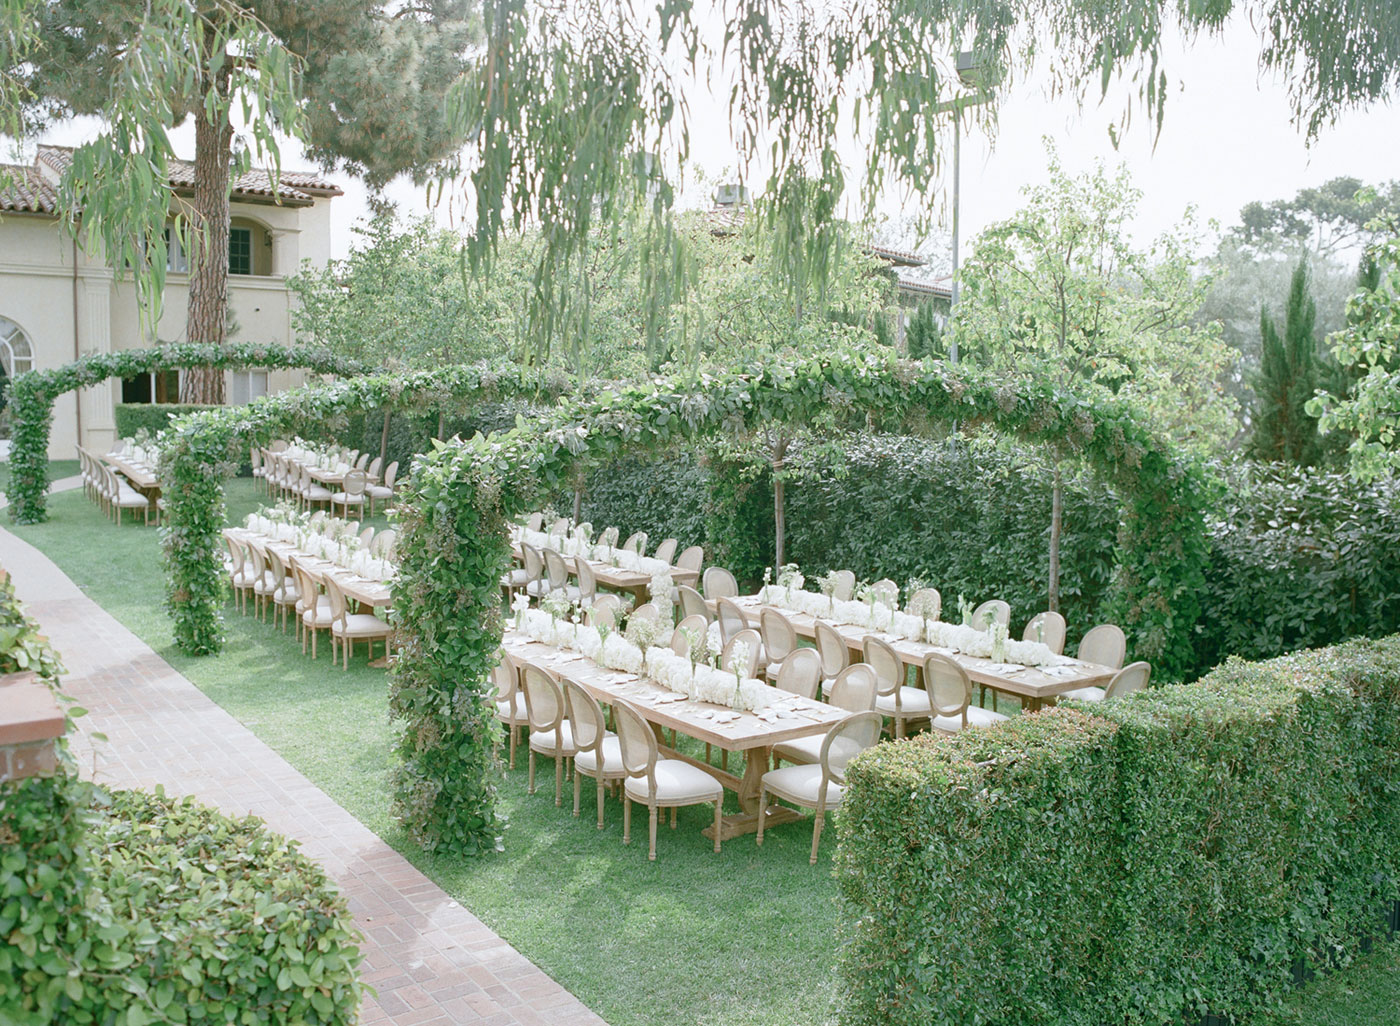 Green arches over tables at outdoor wedding